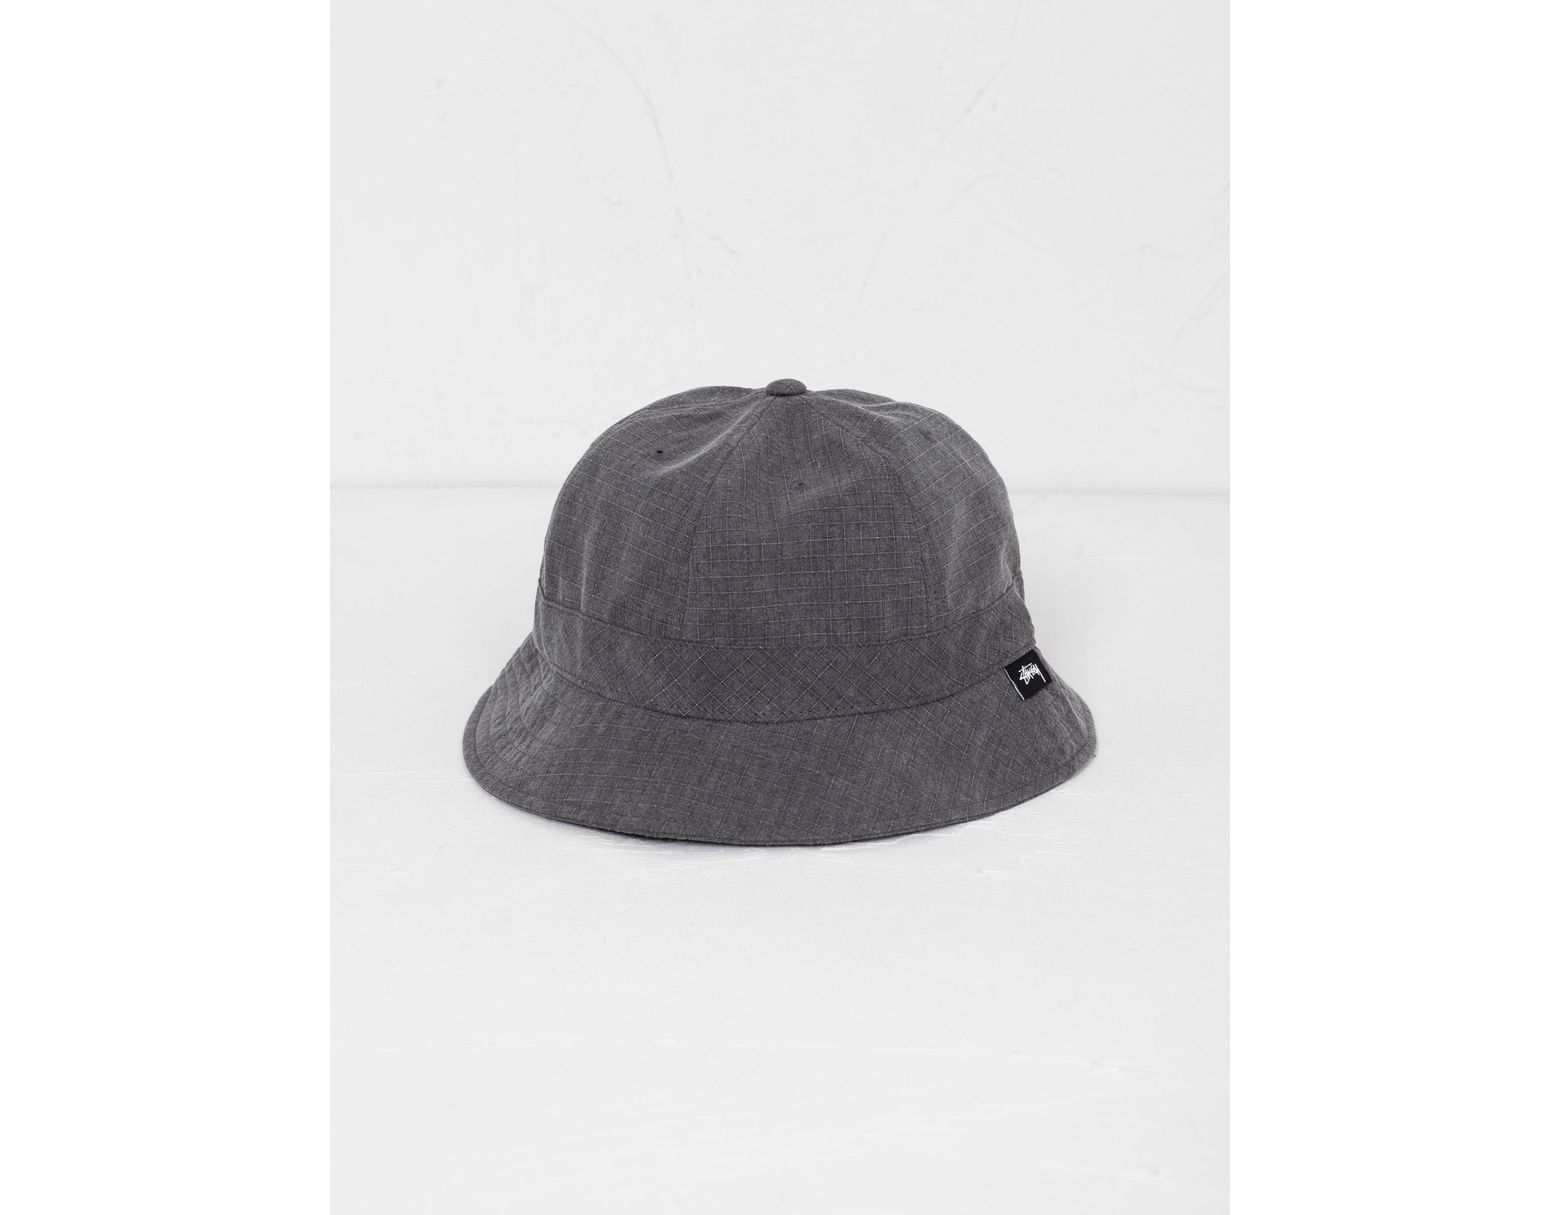 198c789ae6e9b6 Stussy Washed Ripstop Bell Bucket Hat Black in Black for Men - Lyst